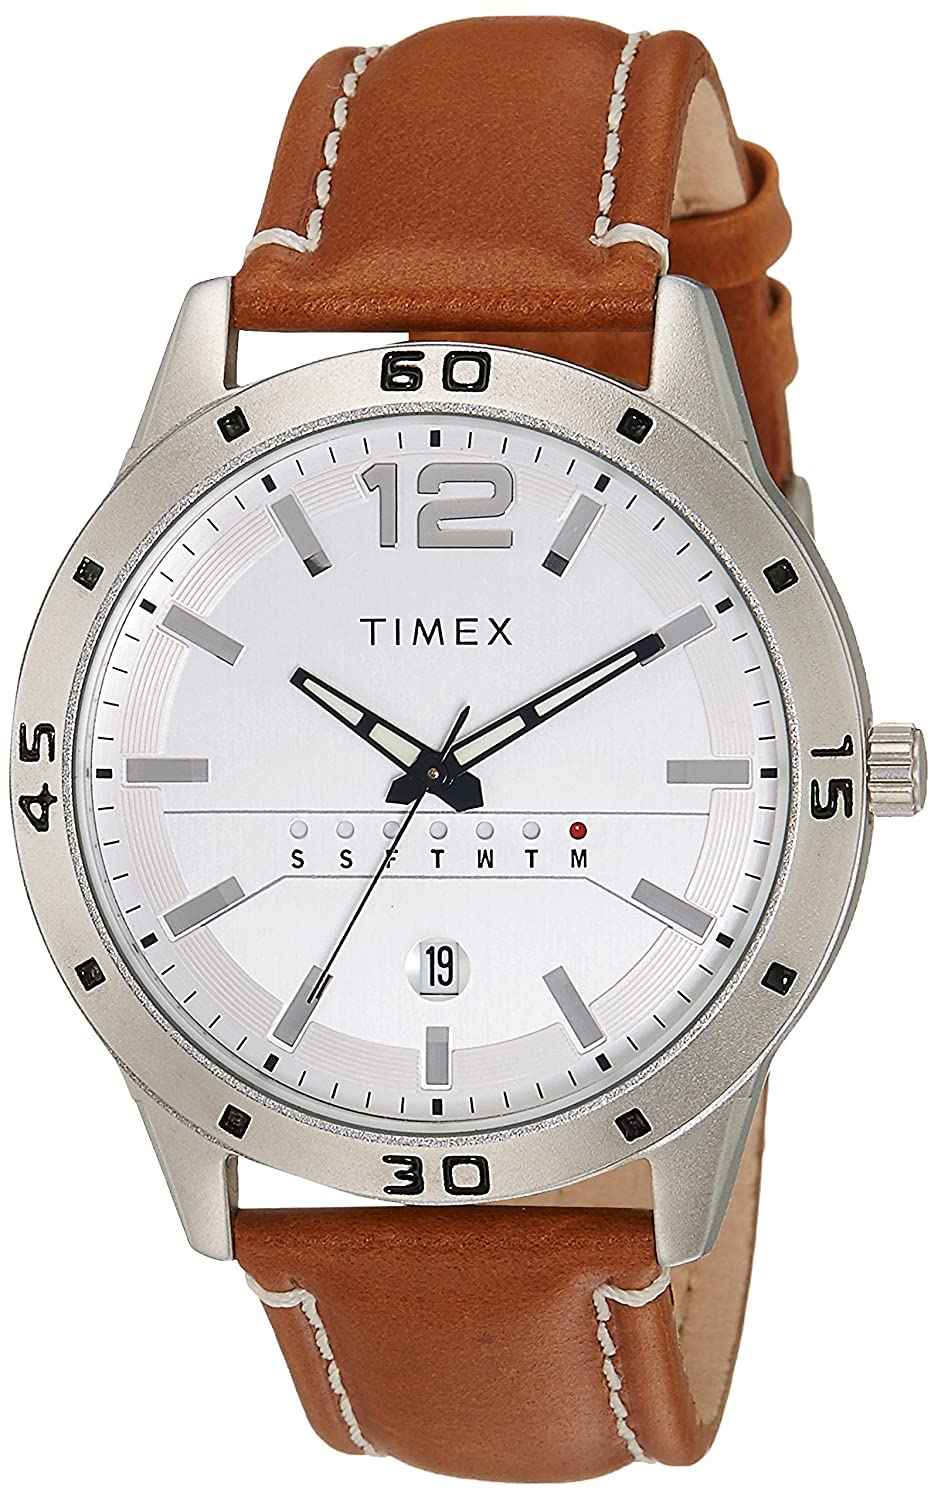 Timex Best Watches Brands For Men in India